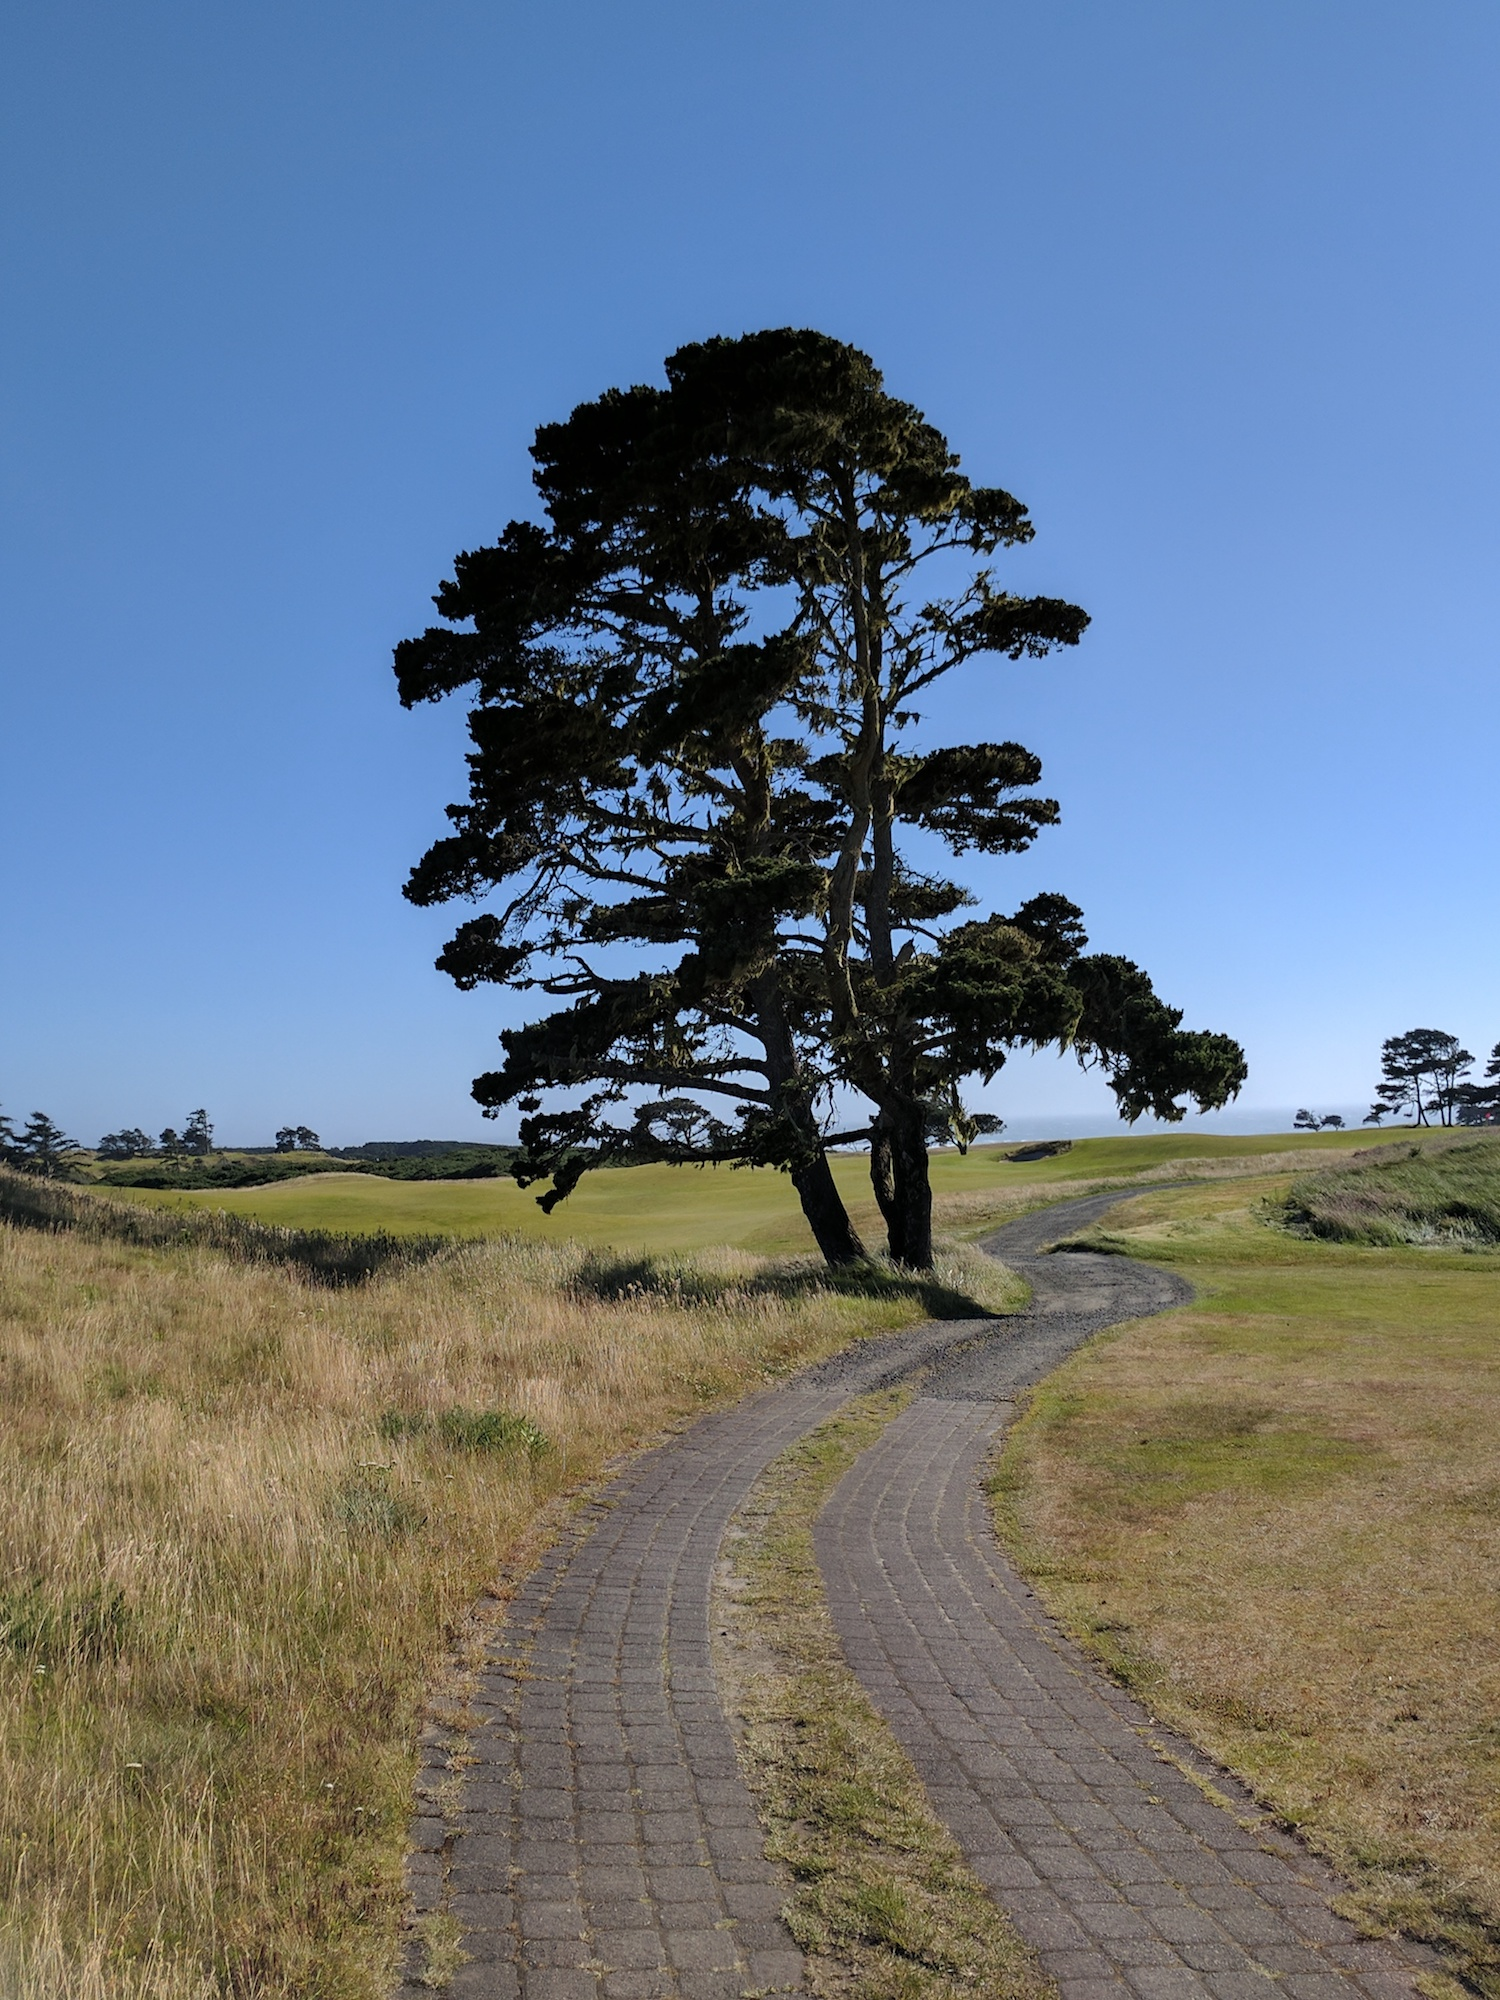 What little man-made materials there are are presented in harmony and scale with the site and environment. This path is a perfect example: ideal either for a pushcart or two golfers or caddies walking abreast.